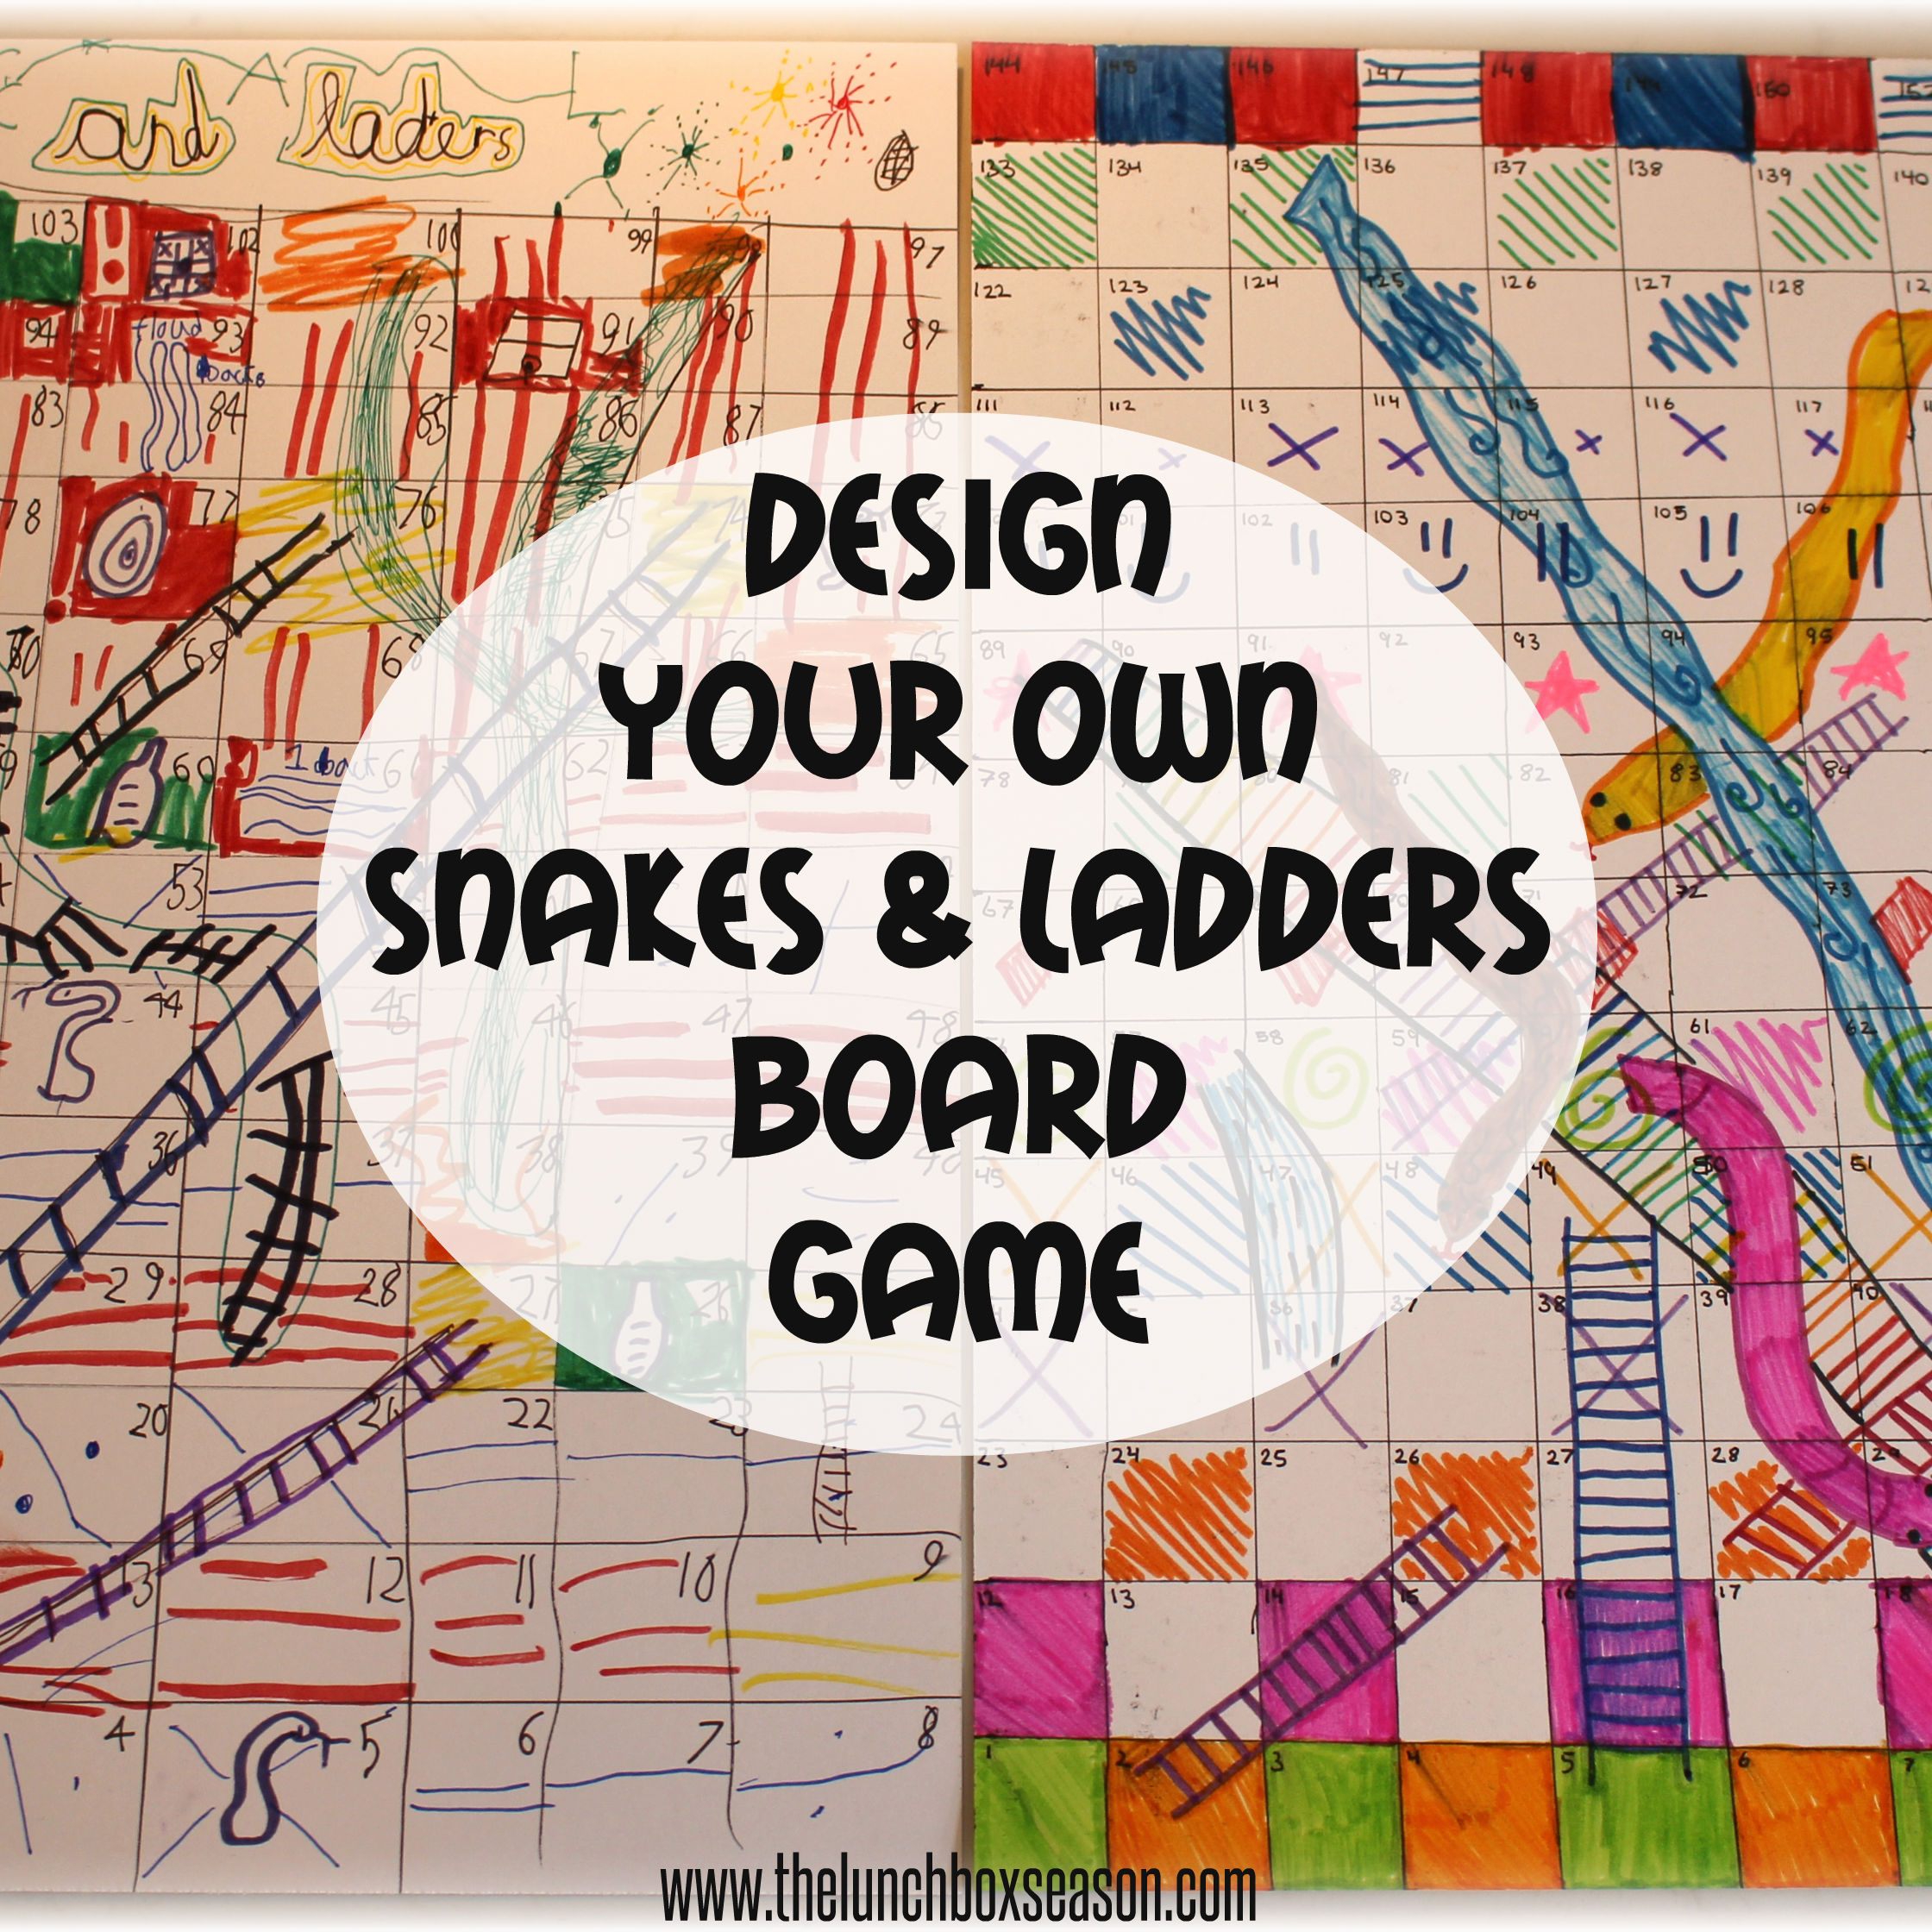 ... Design Your Own Snakes and Ladders [Chutes and ladders] Board Game